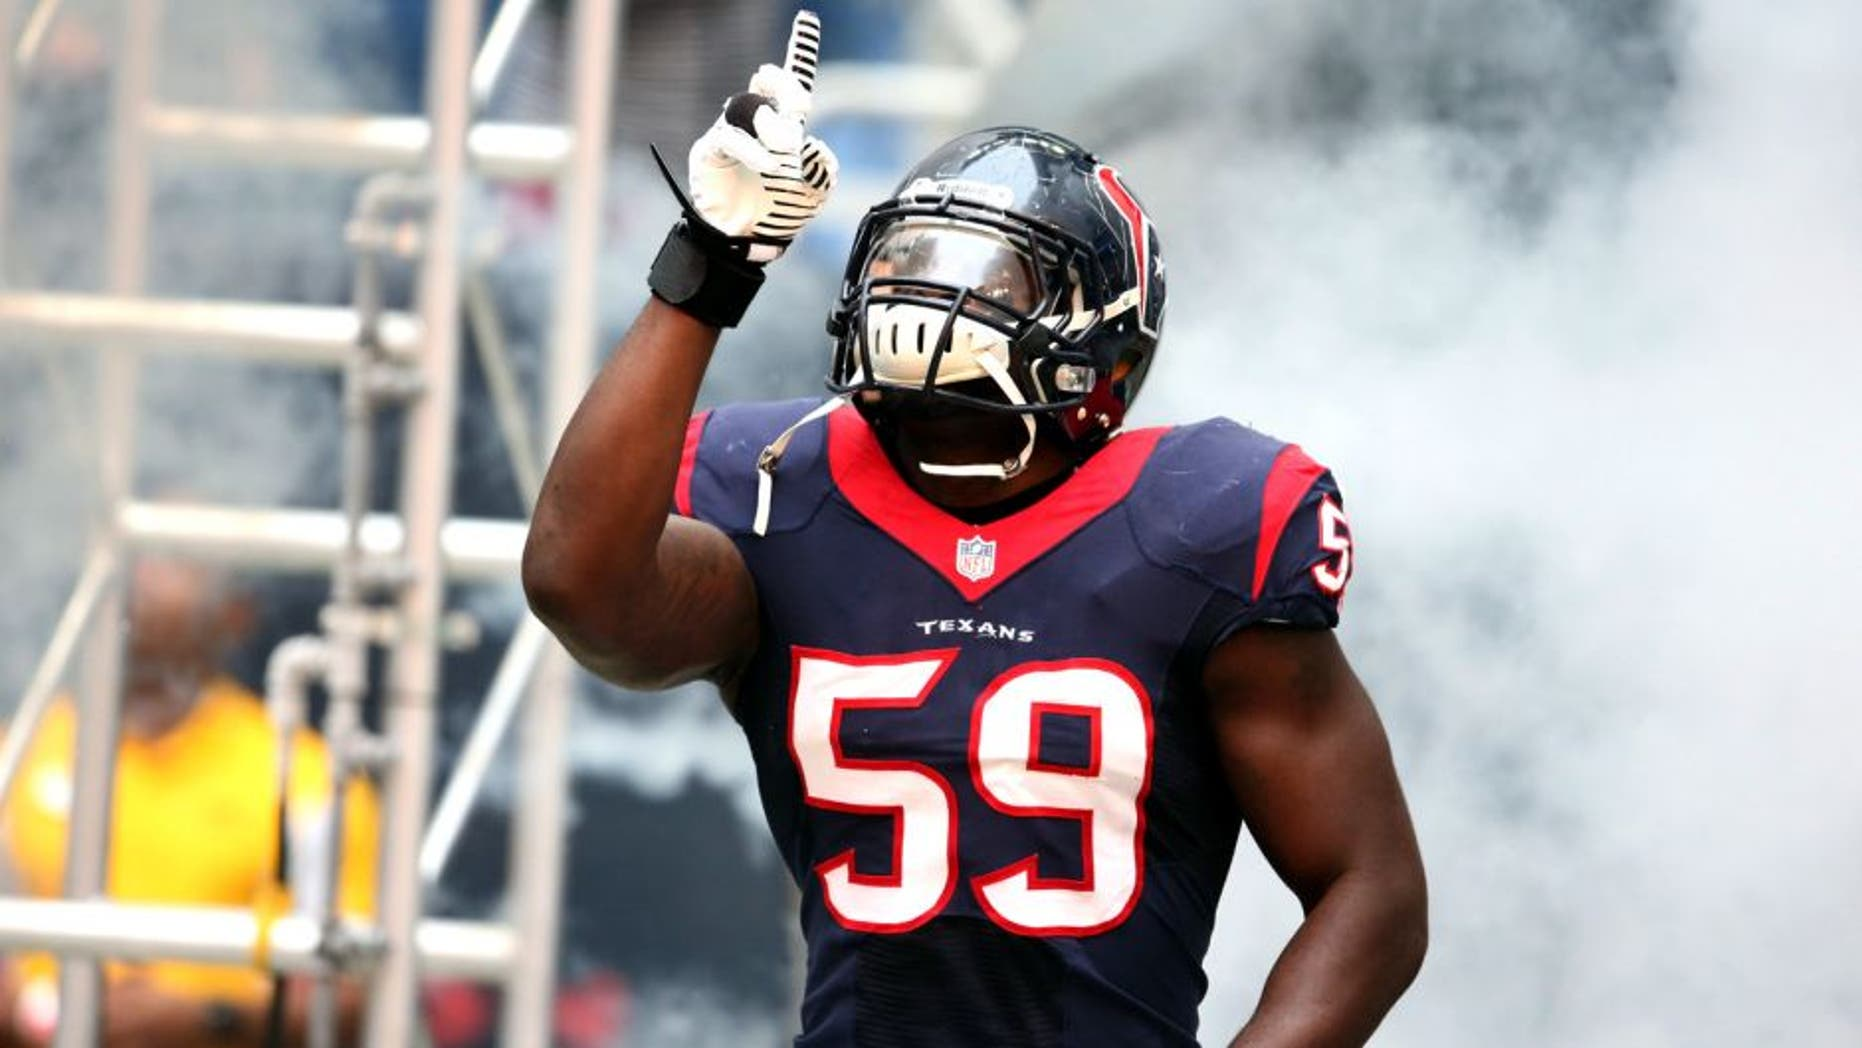 Dec 1, 2013; Houston, TX, USA; Houston Texans linebacker Whitney Mercilus (59) points as he is introduced prior to the game against the New England Patriots at Reliant Stadium. Mandatory Credit: Matthew Emmons-USA TODAY Sports